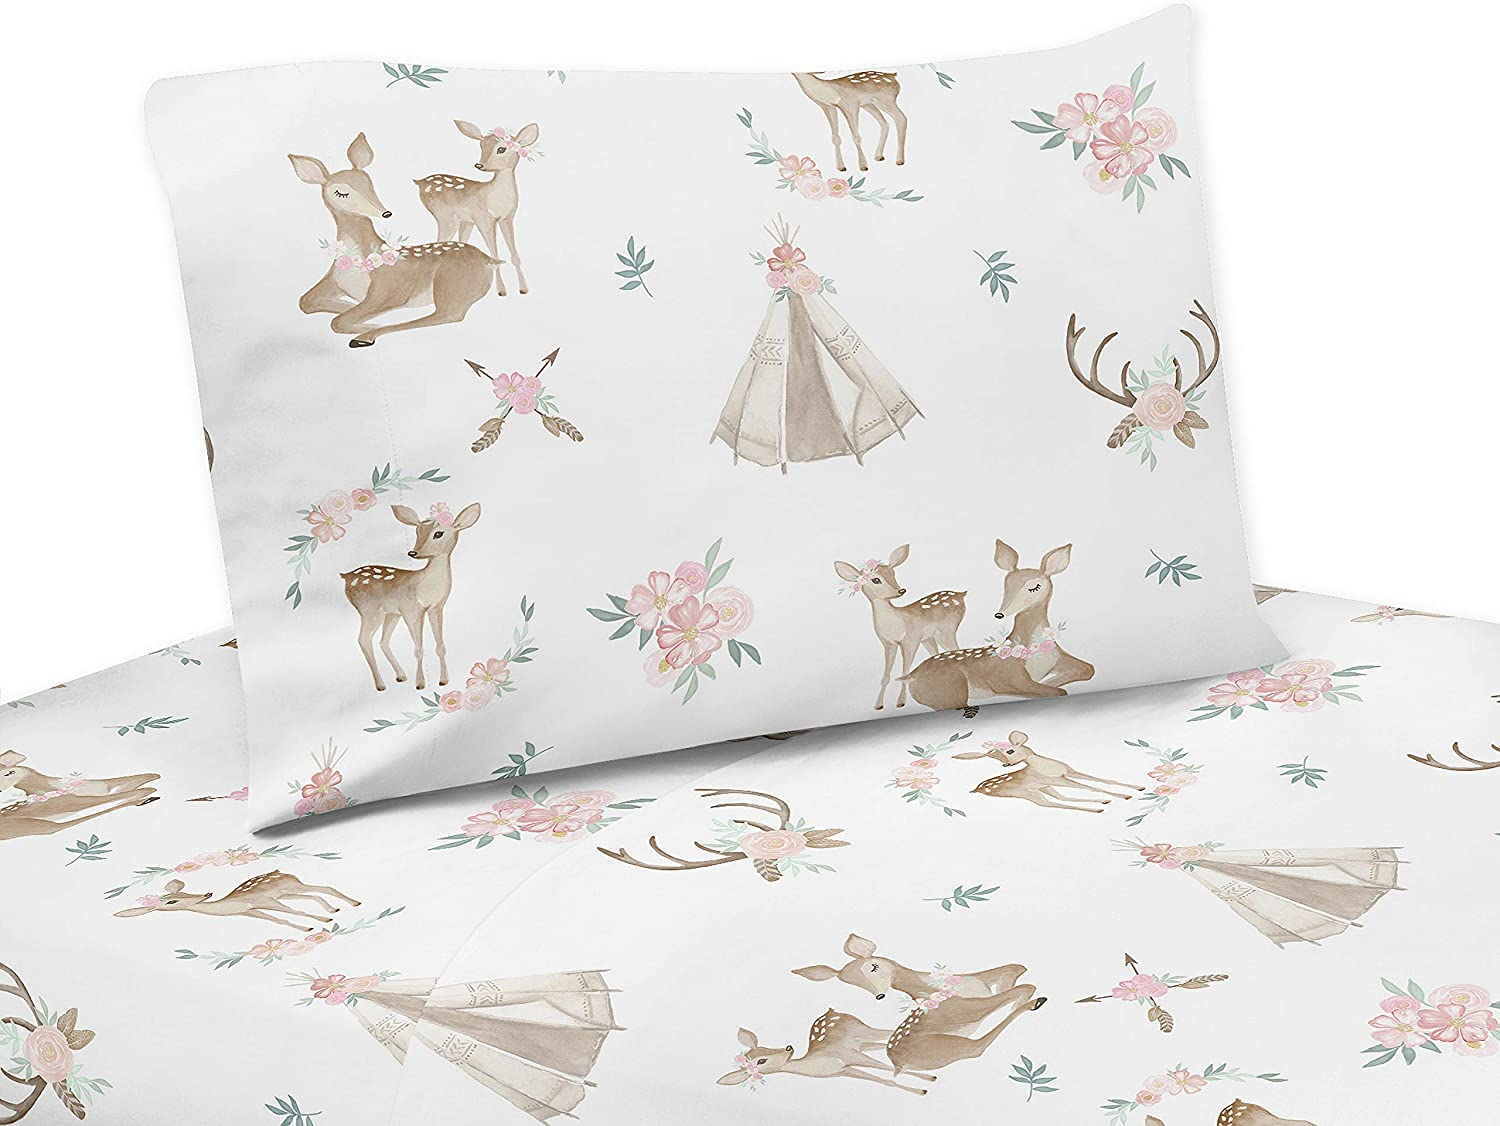 Ambesonne Animal Fitted Sheet /& Pillow Sham Set Decorative Printed 2 Piece Bedding Decor Set Twin Kids Cartoon Style Cheerful Woodland Animals as Bear Mole Deer Rabbit and Snail Multicolor